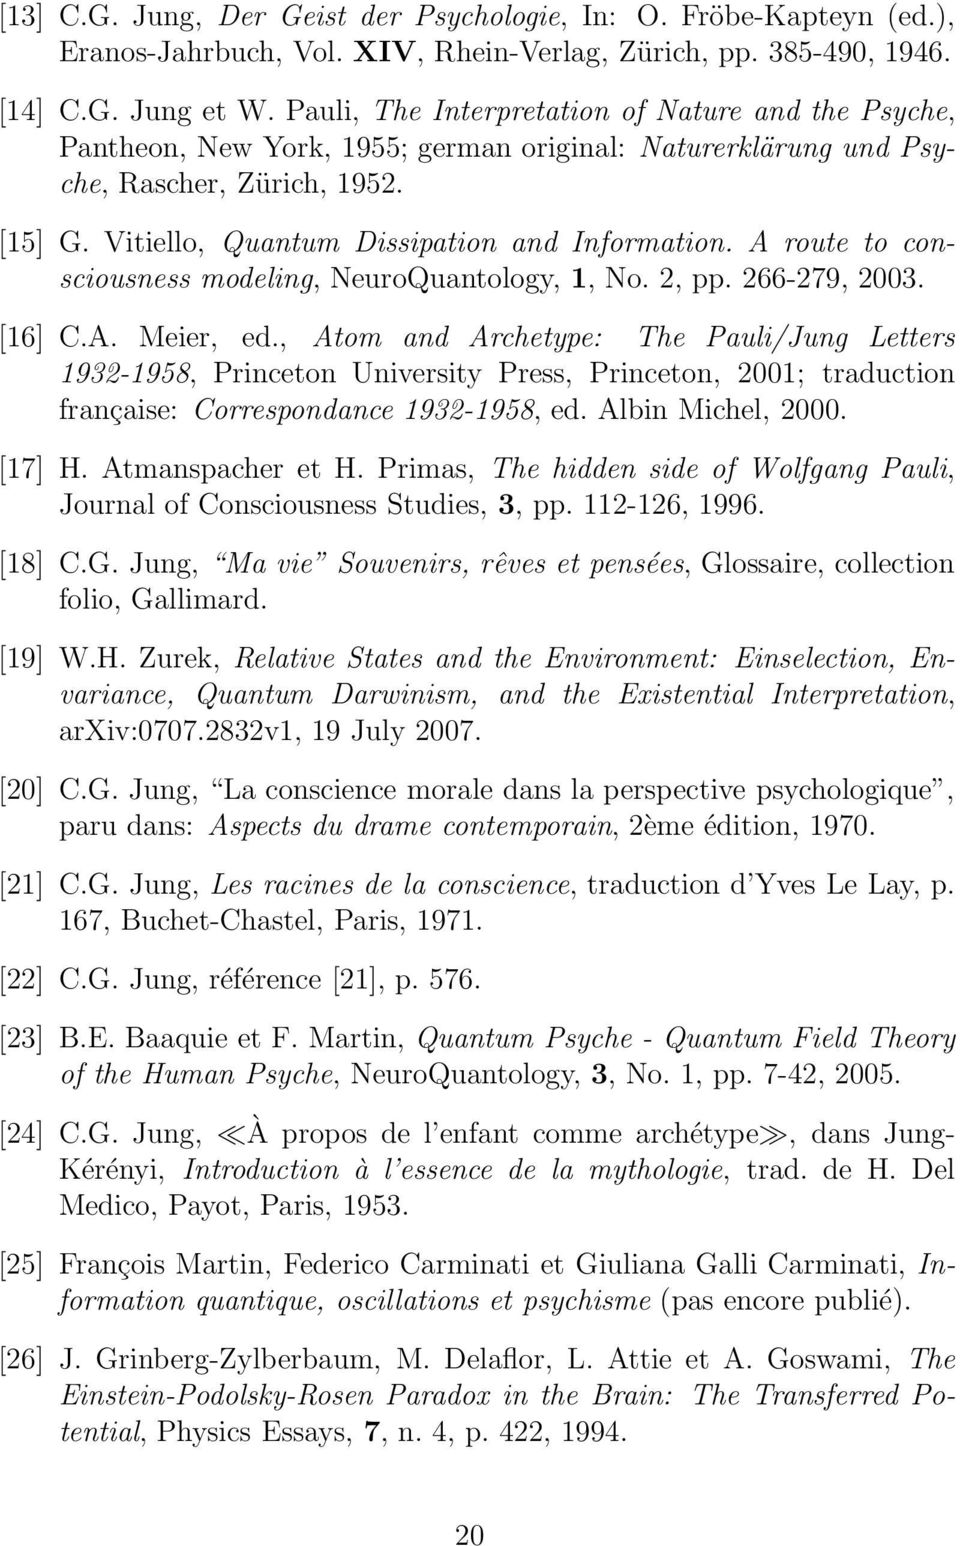 A route to consciousness modeling, NeuroQuantology, 1, No. 2, pp. 266-279, 2003. [16] C.A. Meier, ed.